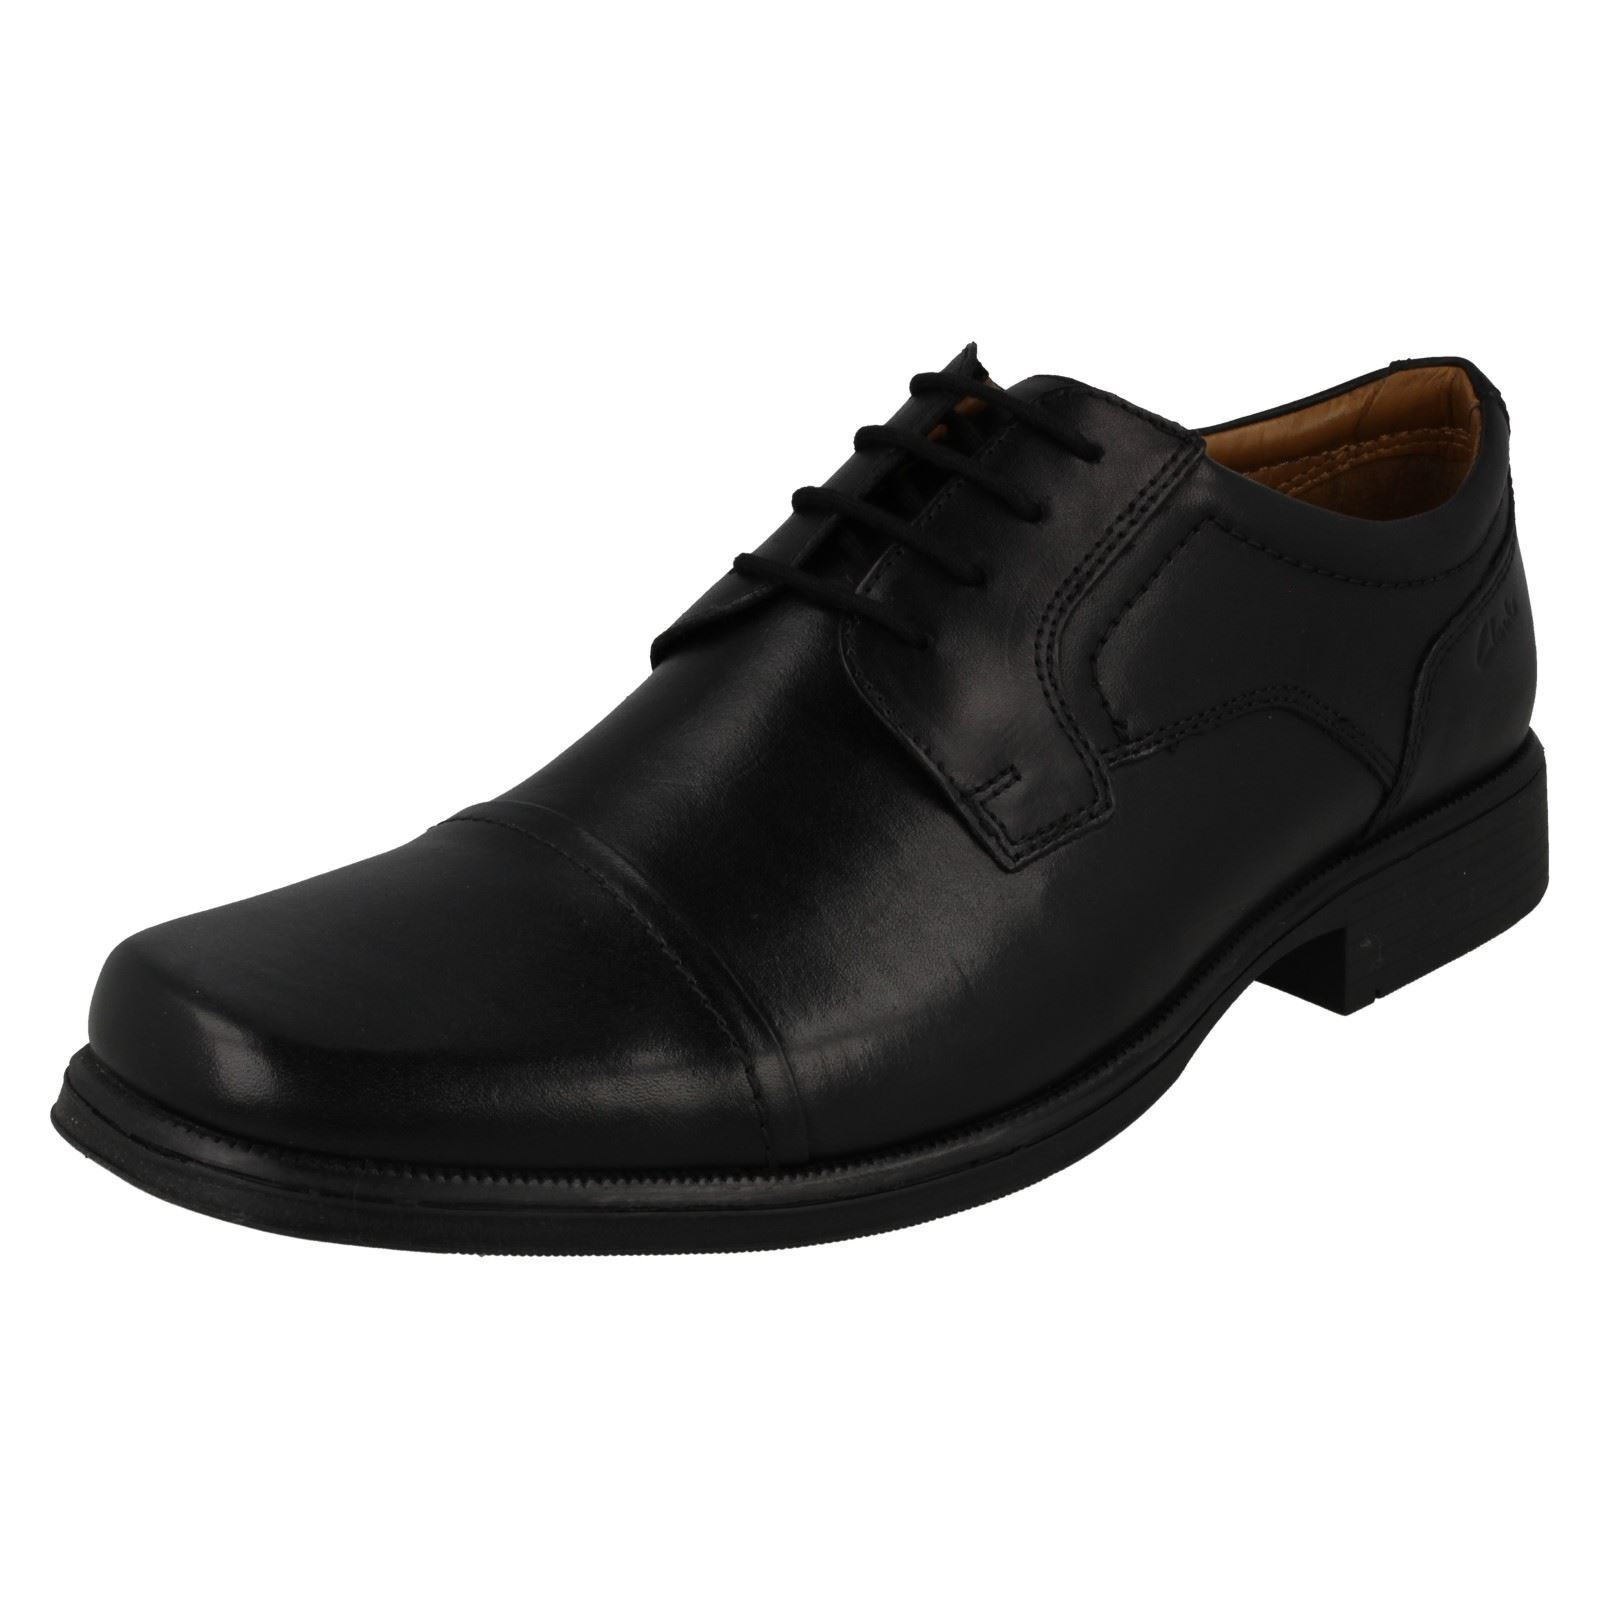 Mens Clarks Formal Lace Up Shoes *Huckley Cap*